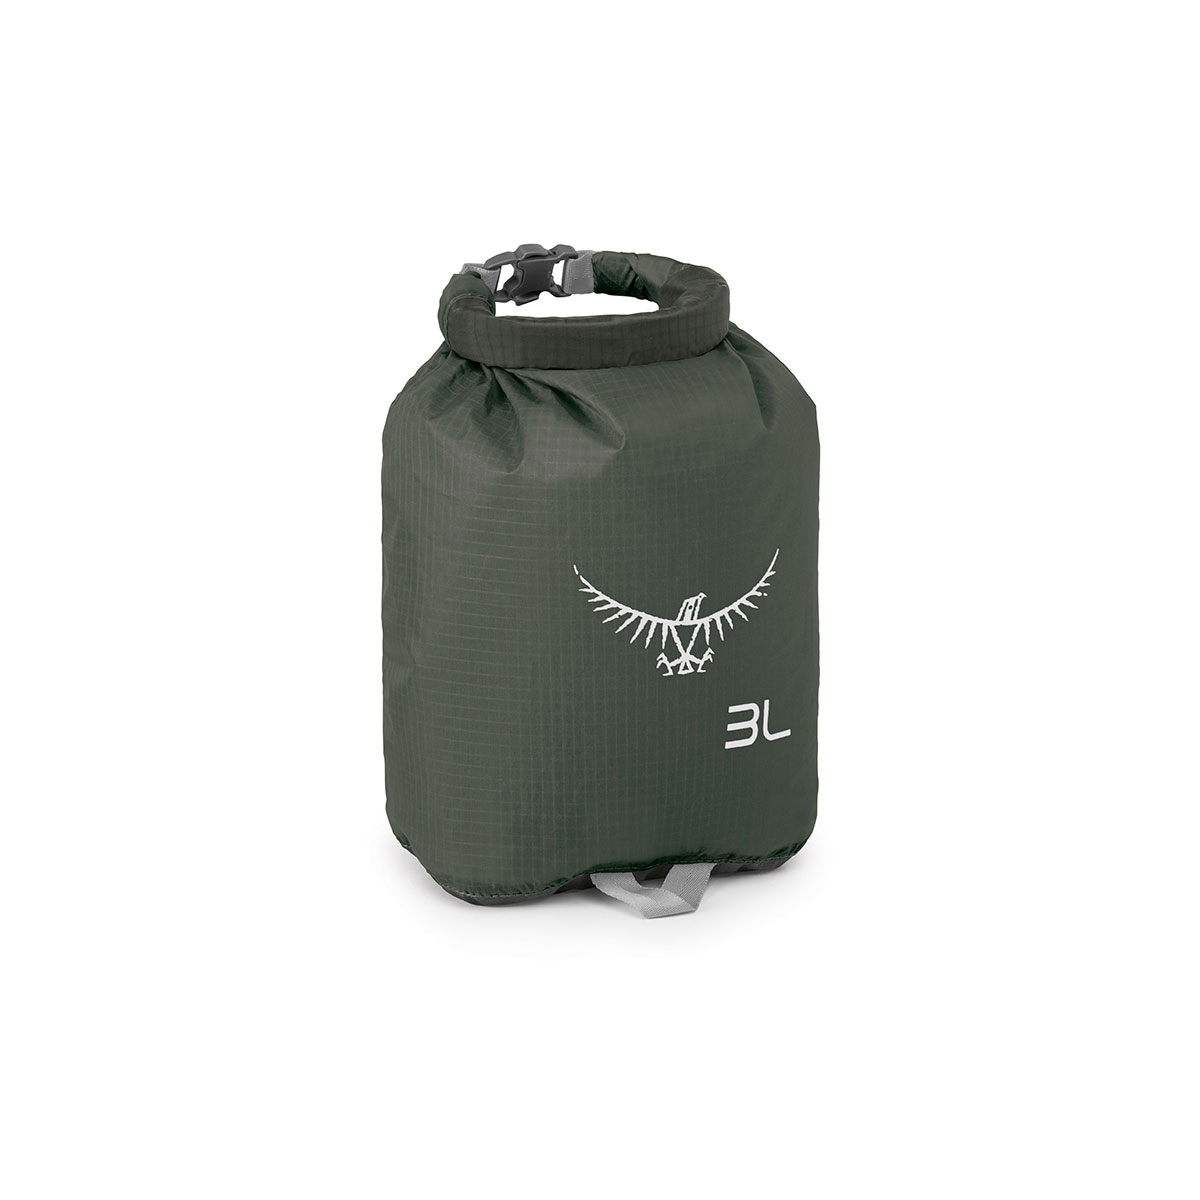 2021 OSPREY ULTRALIGHT DRY SACK 3L SHADOW GREY Množ. Uni